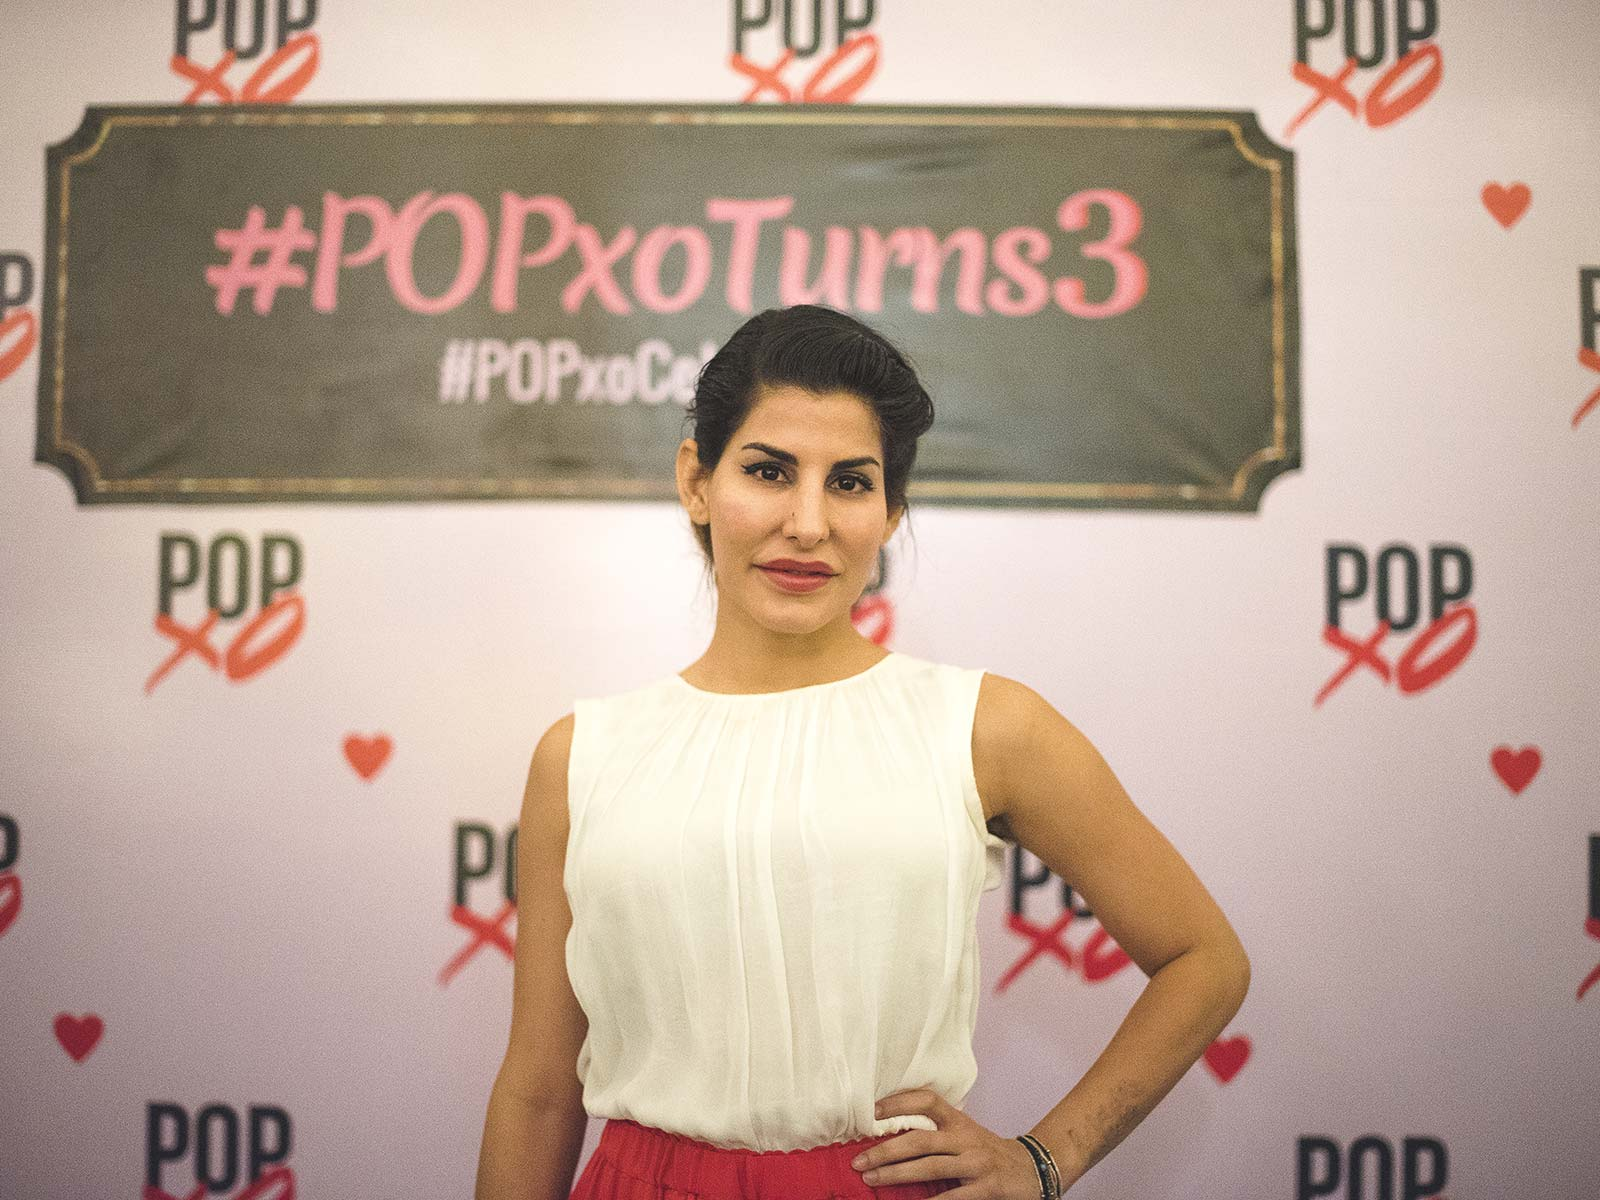 Charu Sachdev at the #POPxoTurns3 party